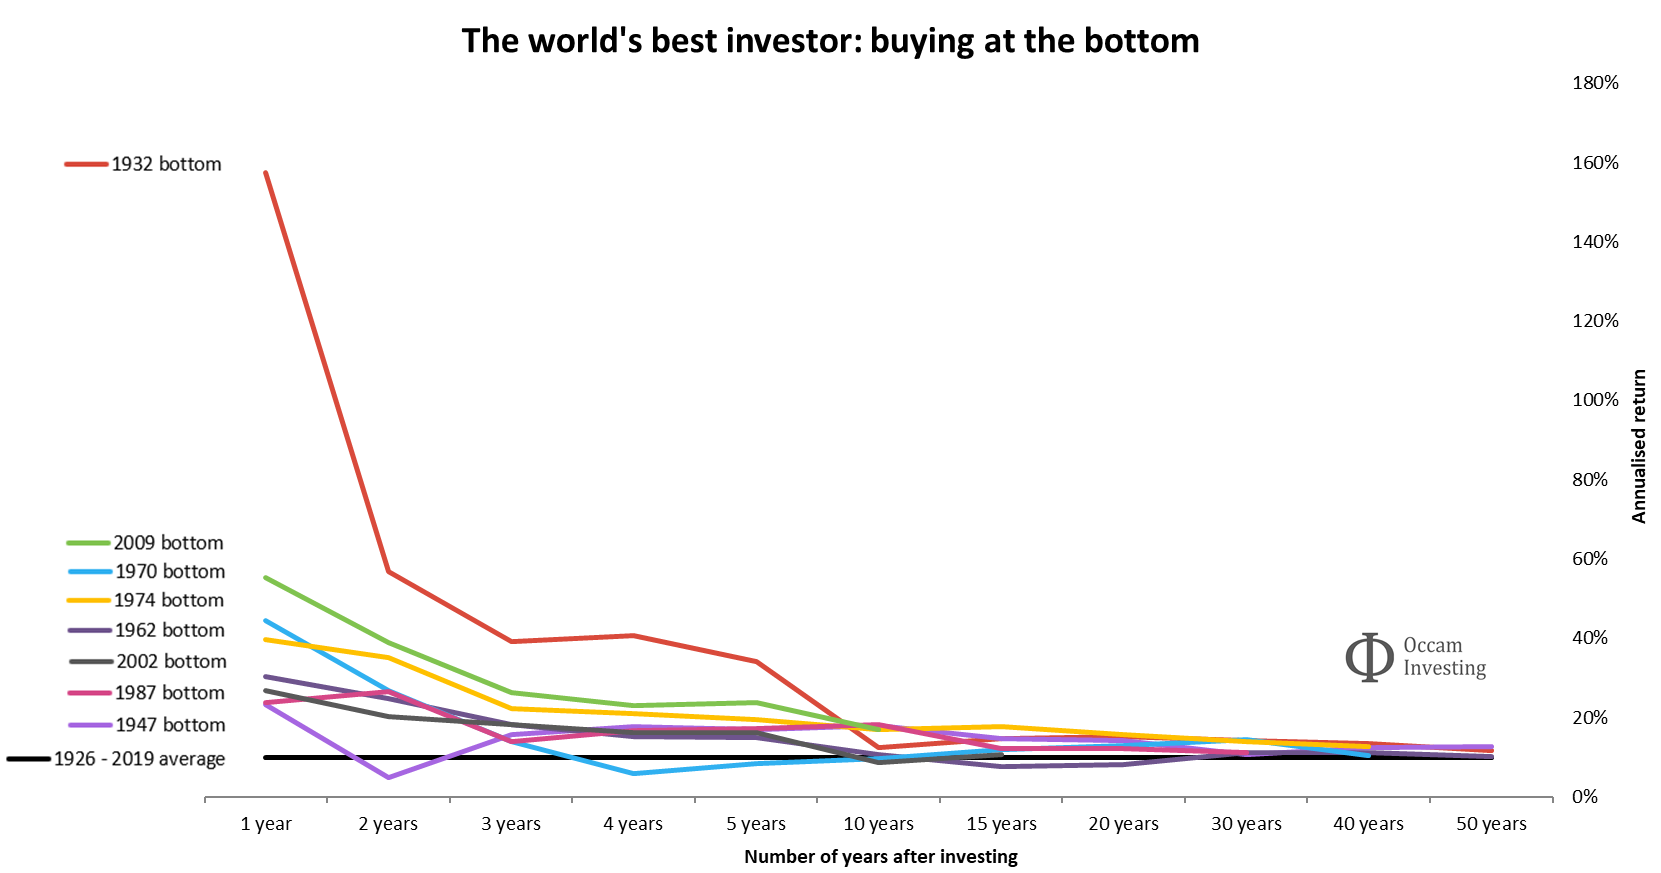 Buying at the bottom